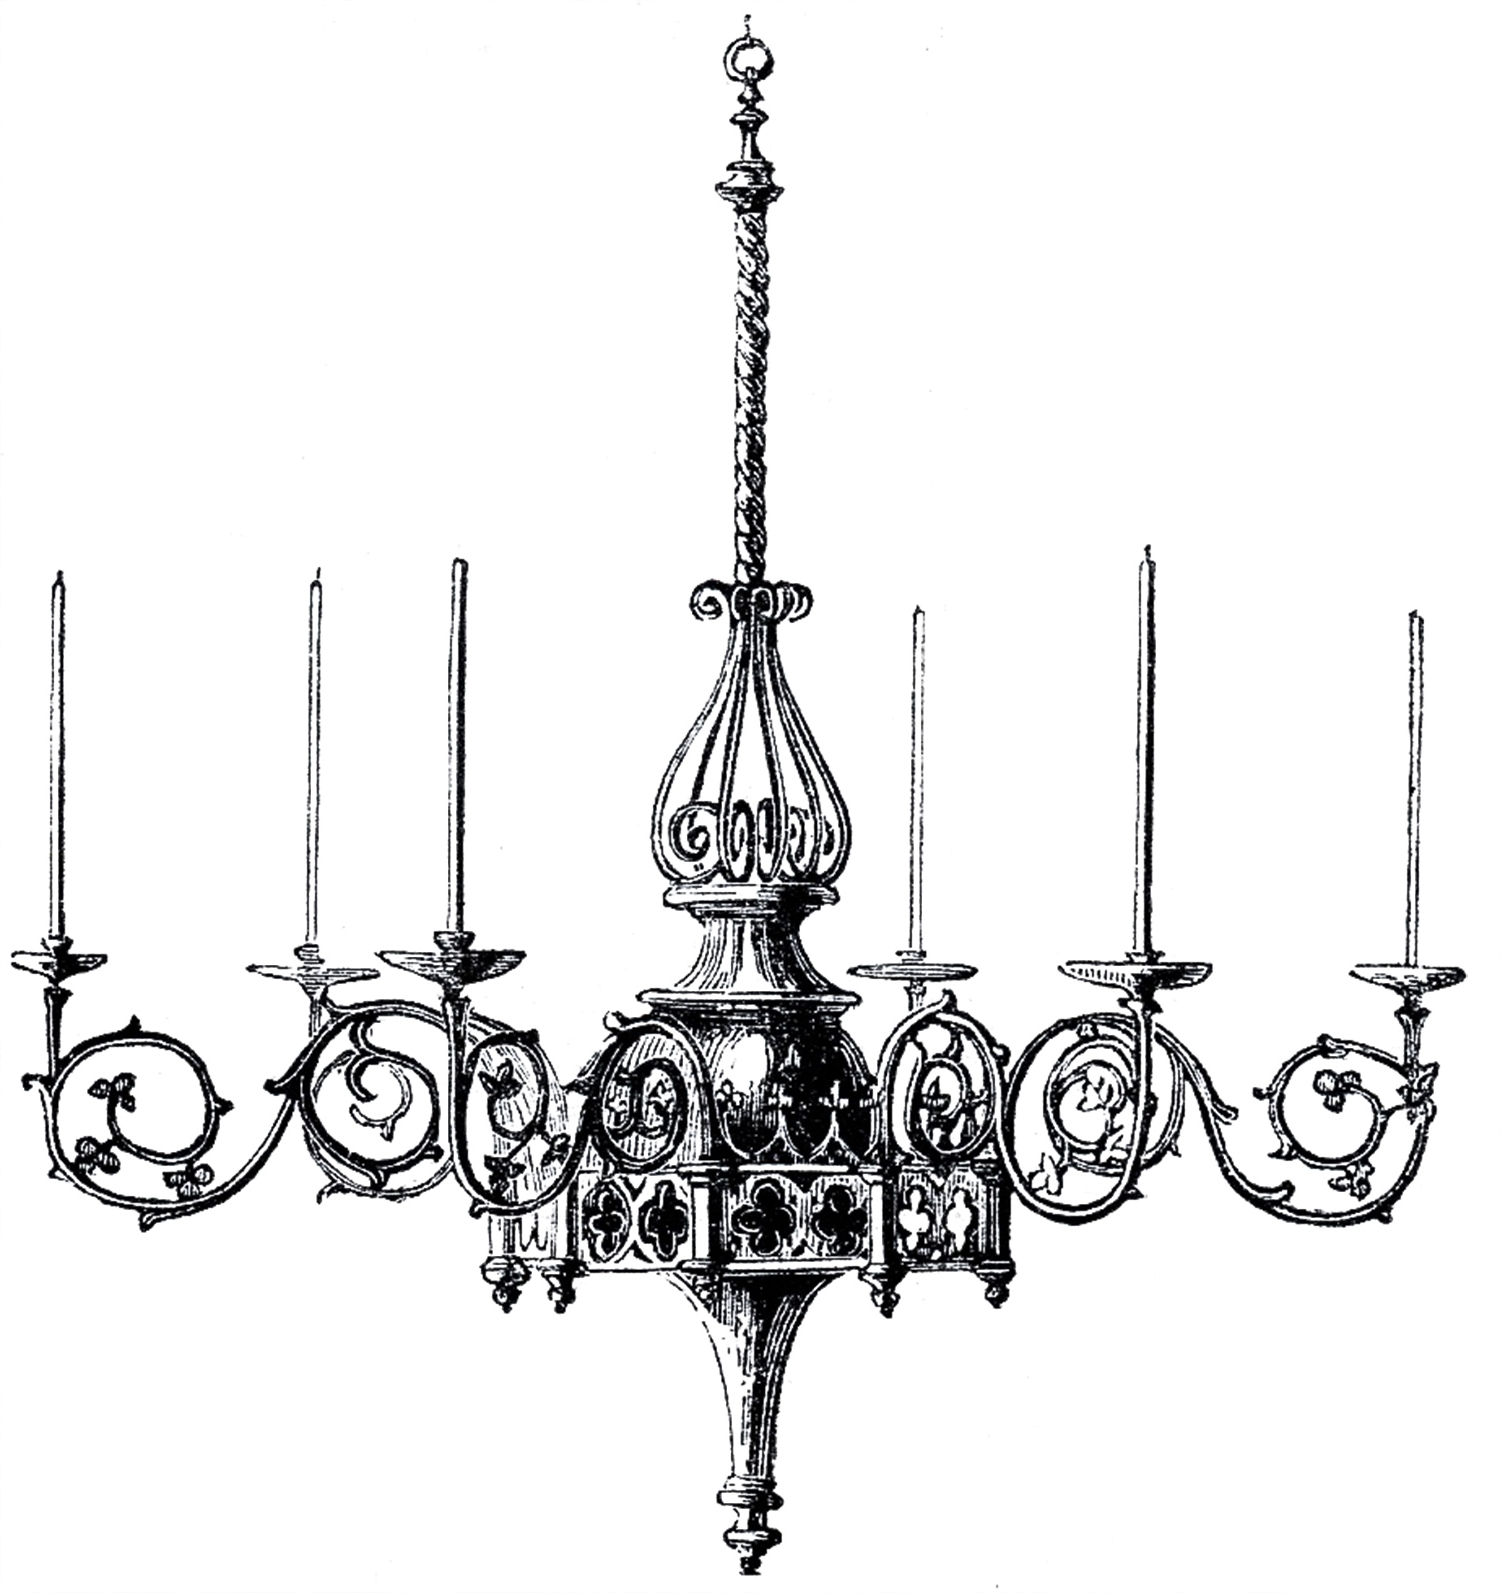 Black Gothic Chandelier Throughout Popular Vintage Gothic Chandelier Image – The Graphics Fairy (View 6 of 15)